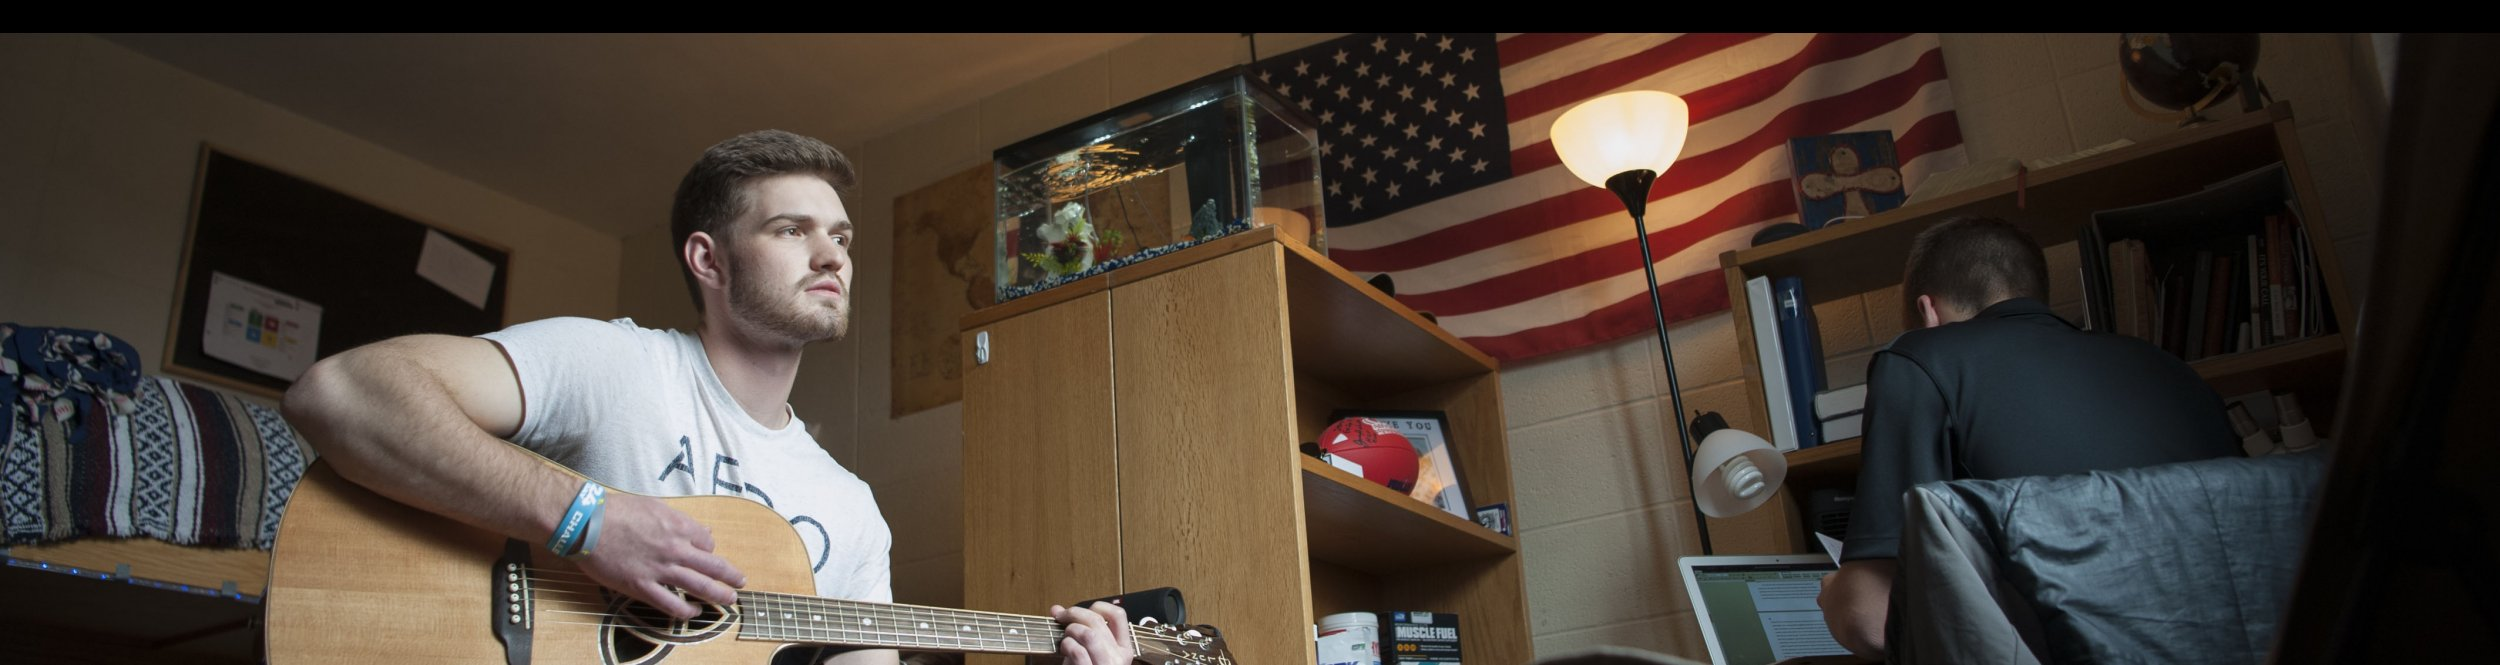 A male student holding a guitar sits in his dorm room.